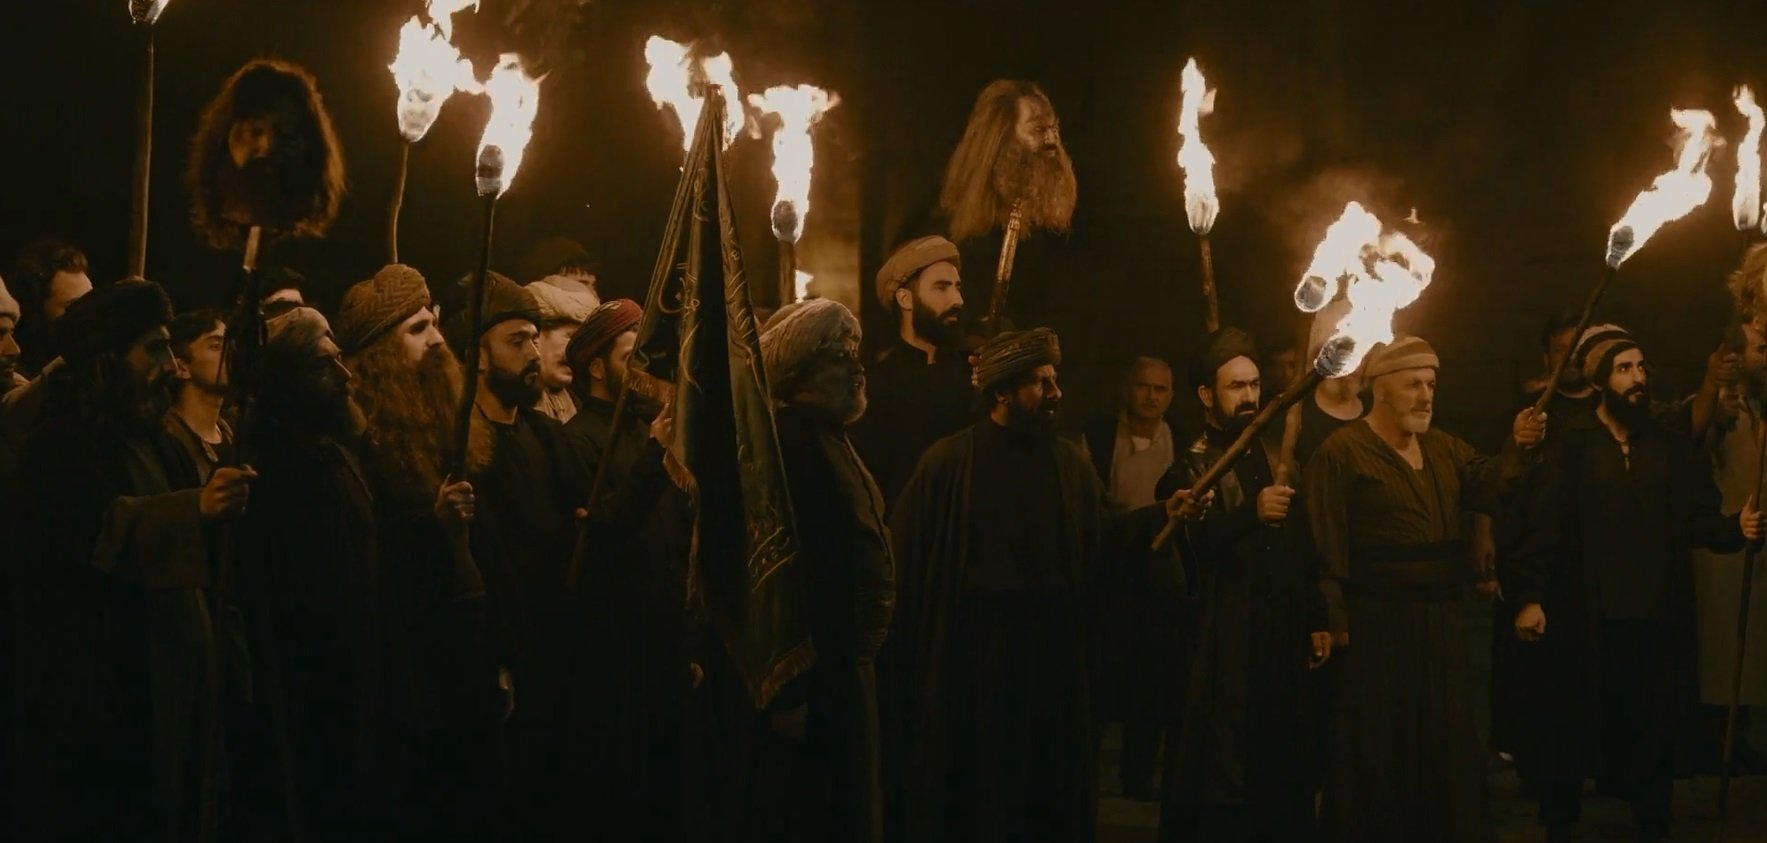 The dervish arson scene looks like a witch hunt scene of the Medieval Inquisition.